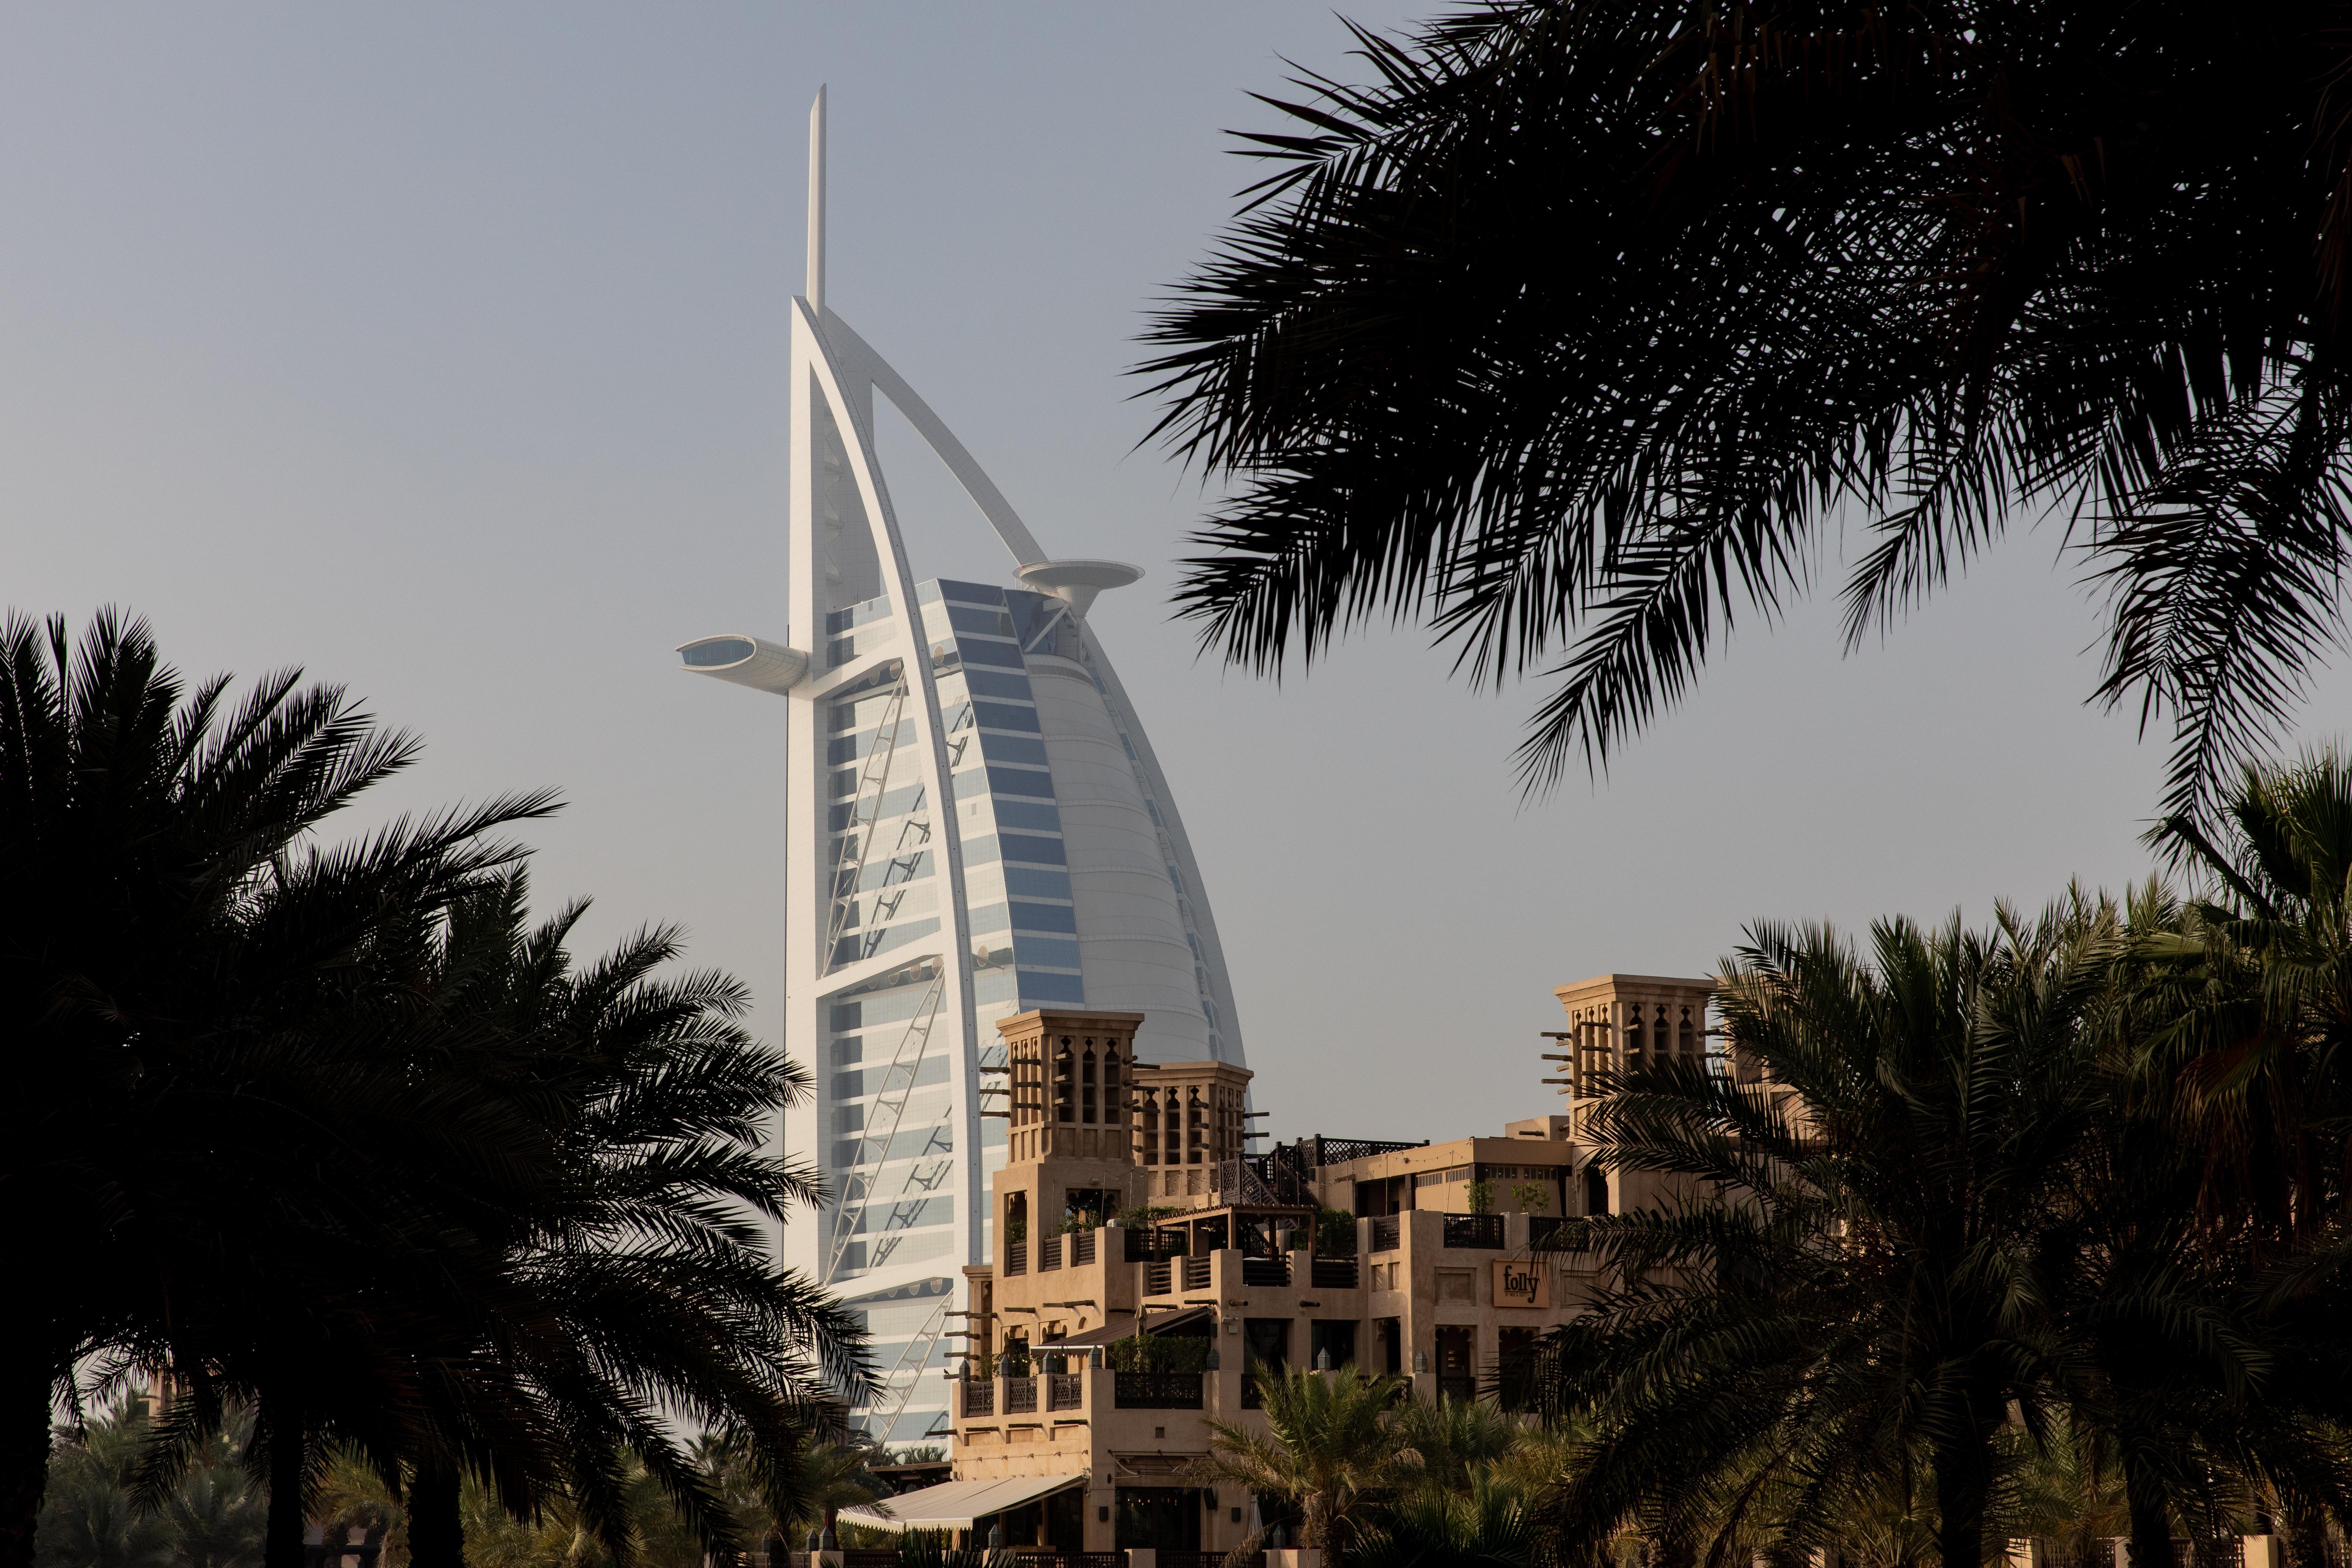 Dubai Architecture Guide